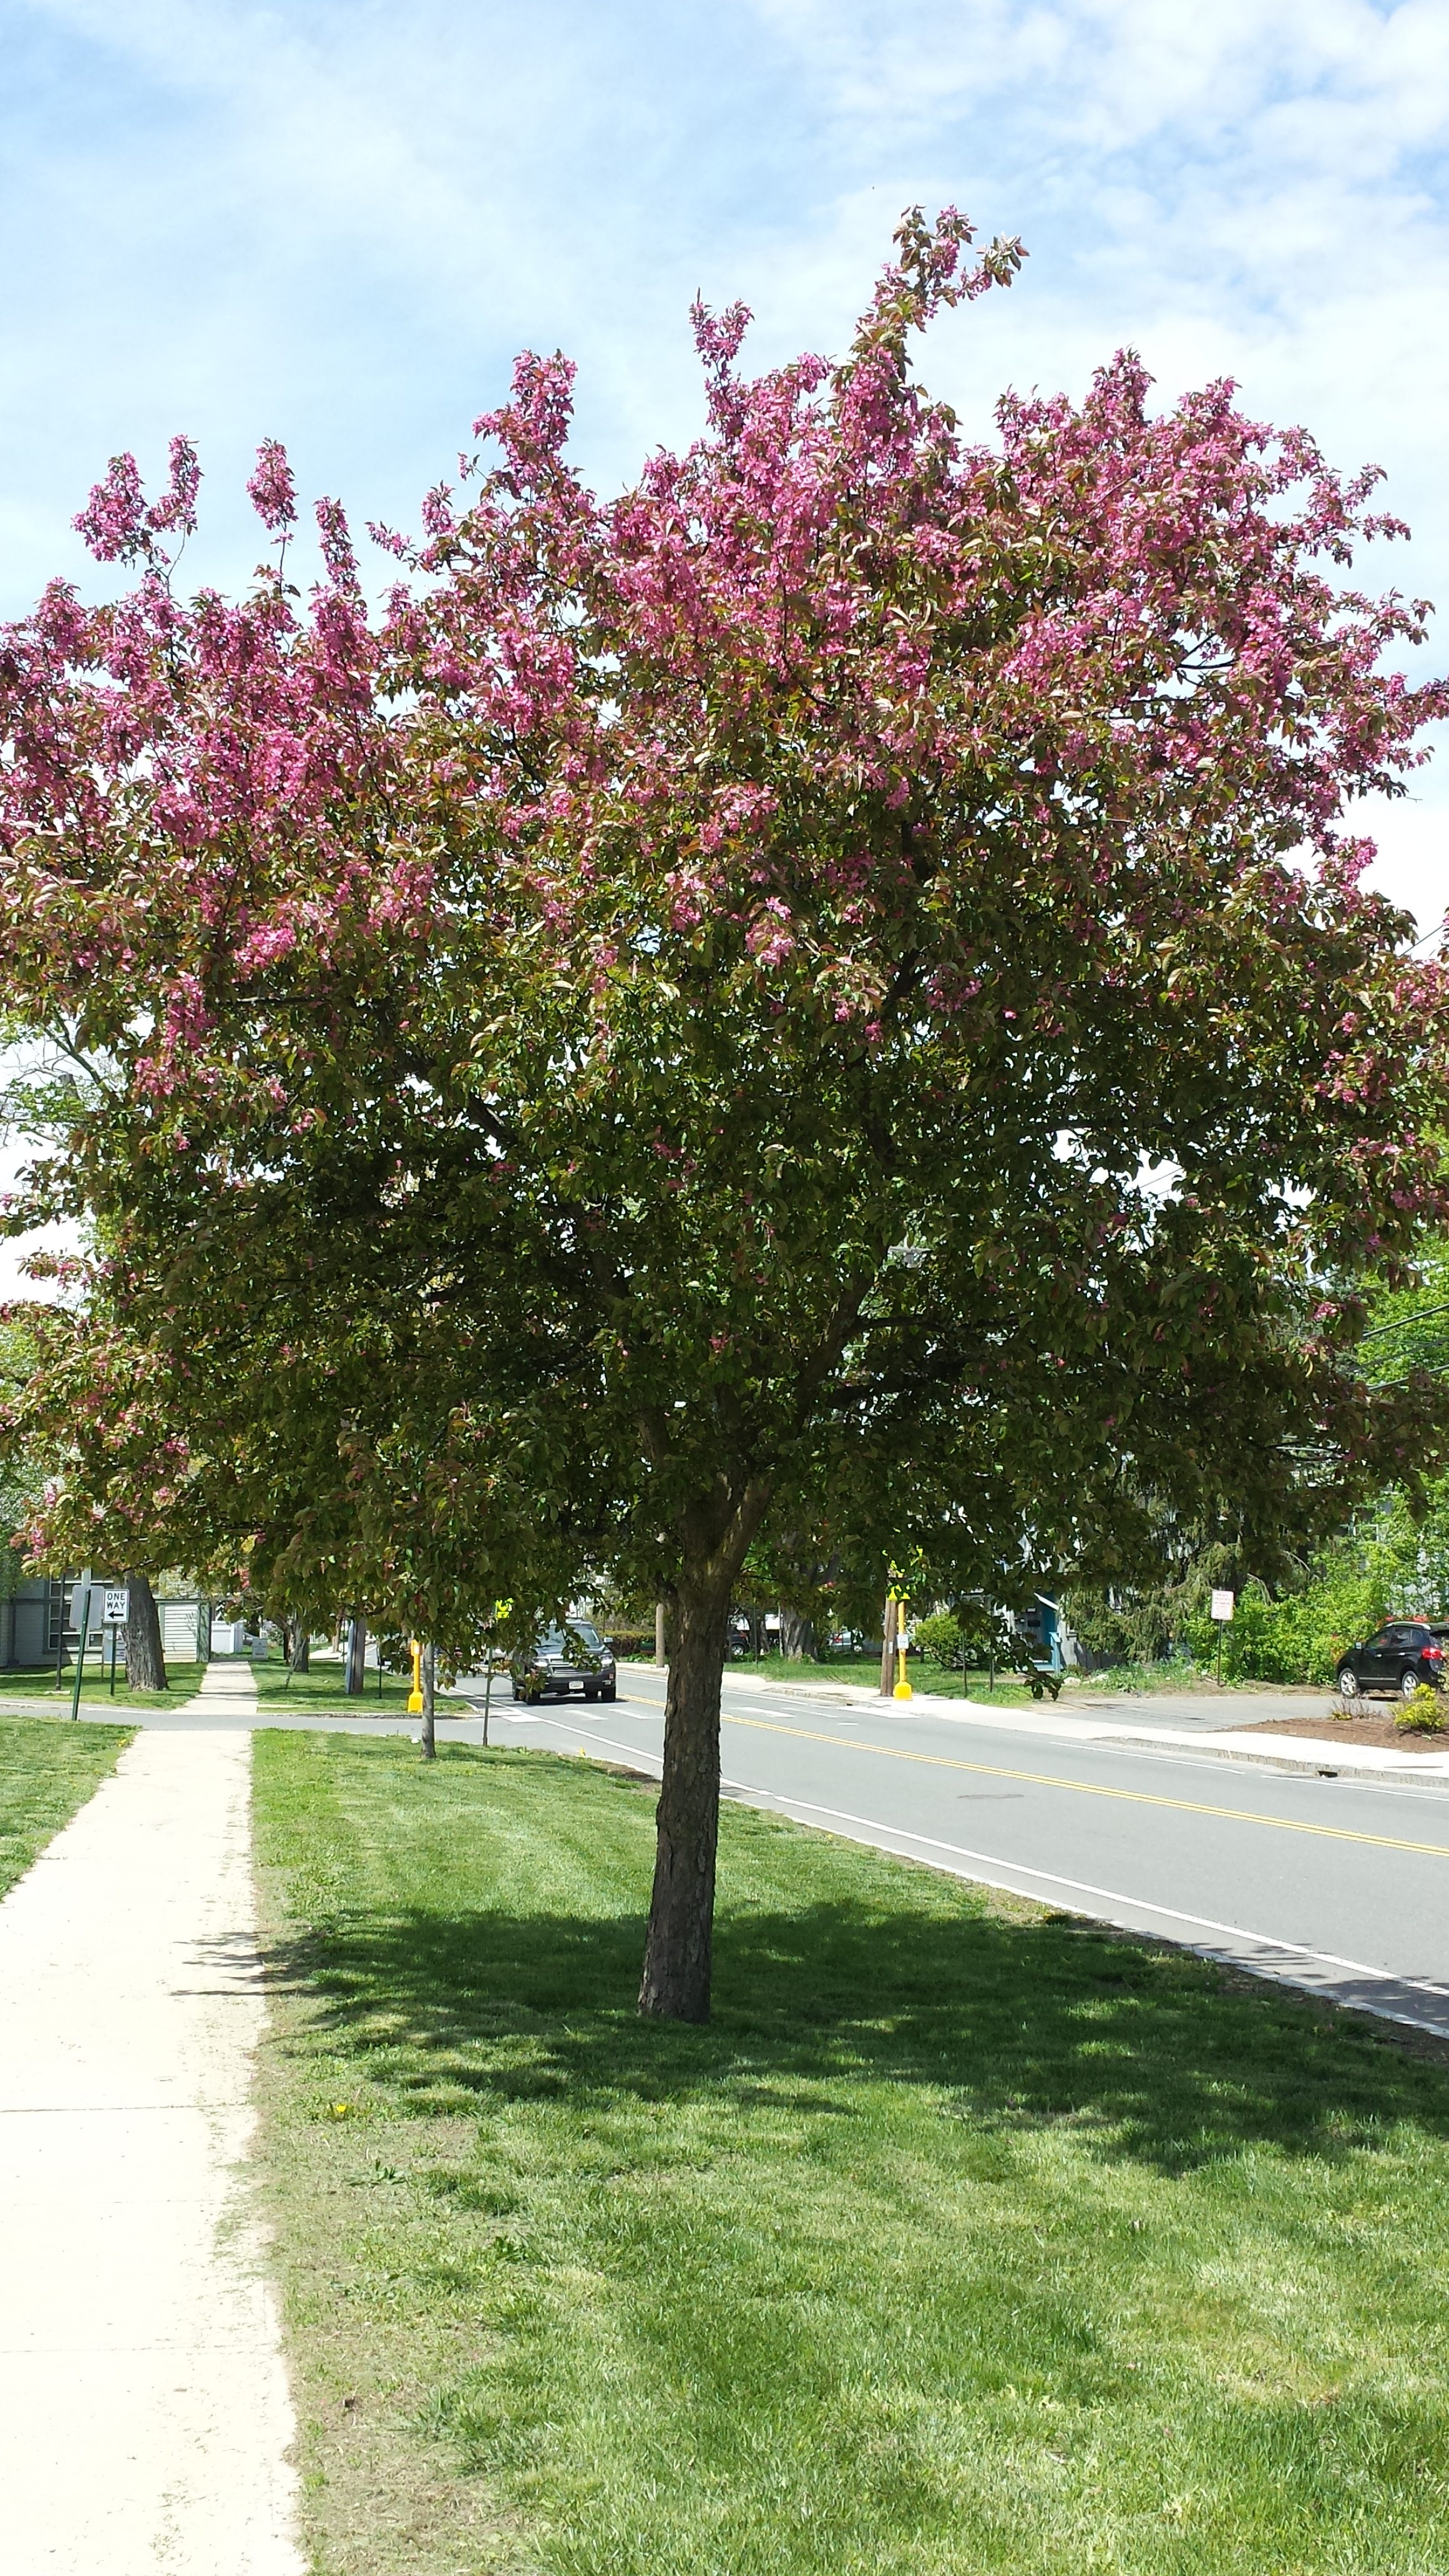 What Are Those Flowering Trees Bushes I Drive By Every Day Utter Peugeot Expert Fuse Box Location Common Name Crabapple